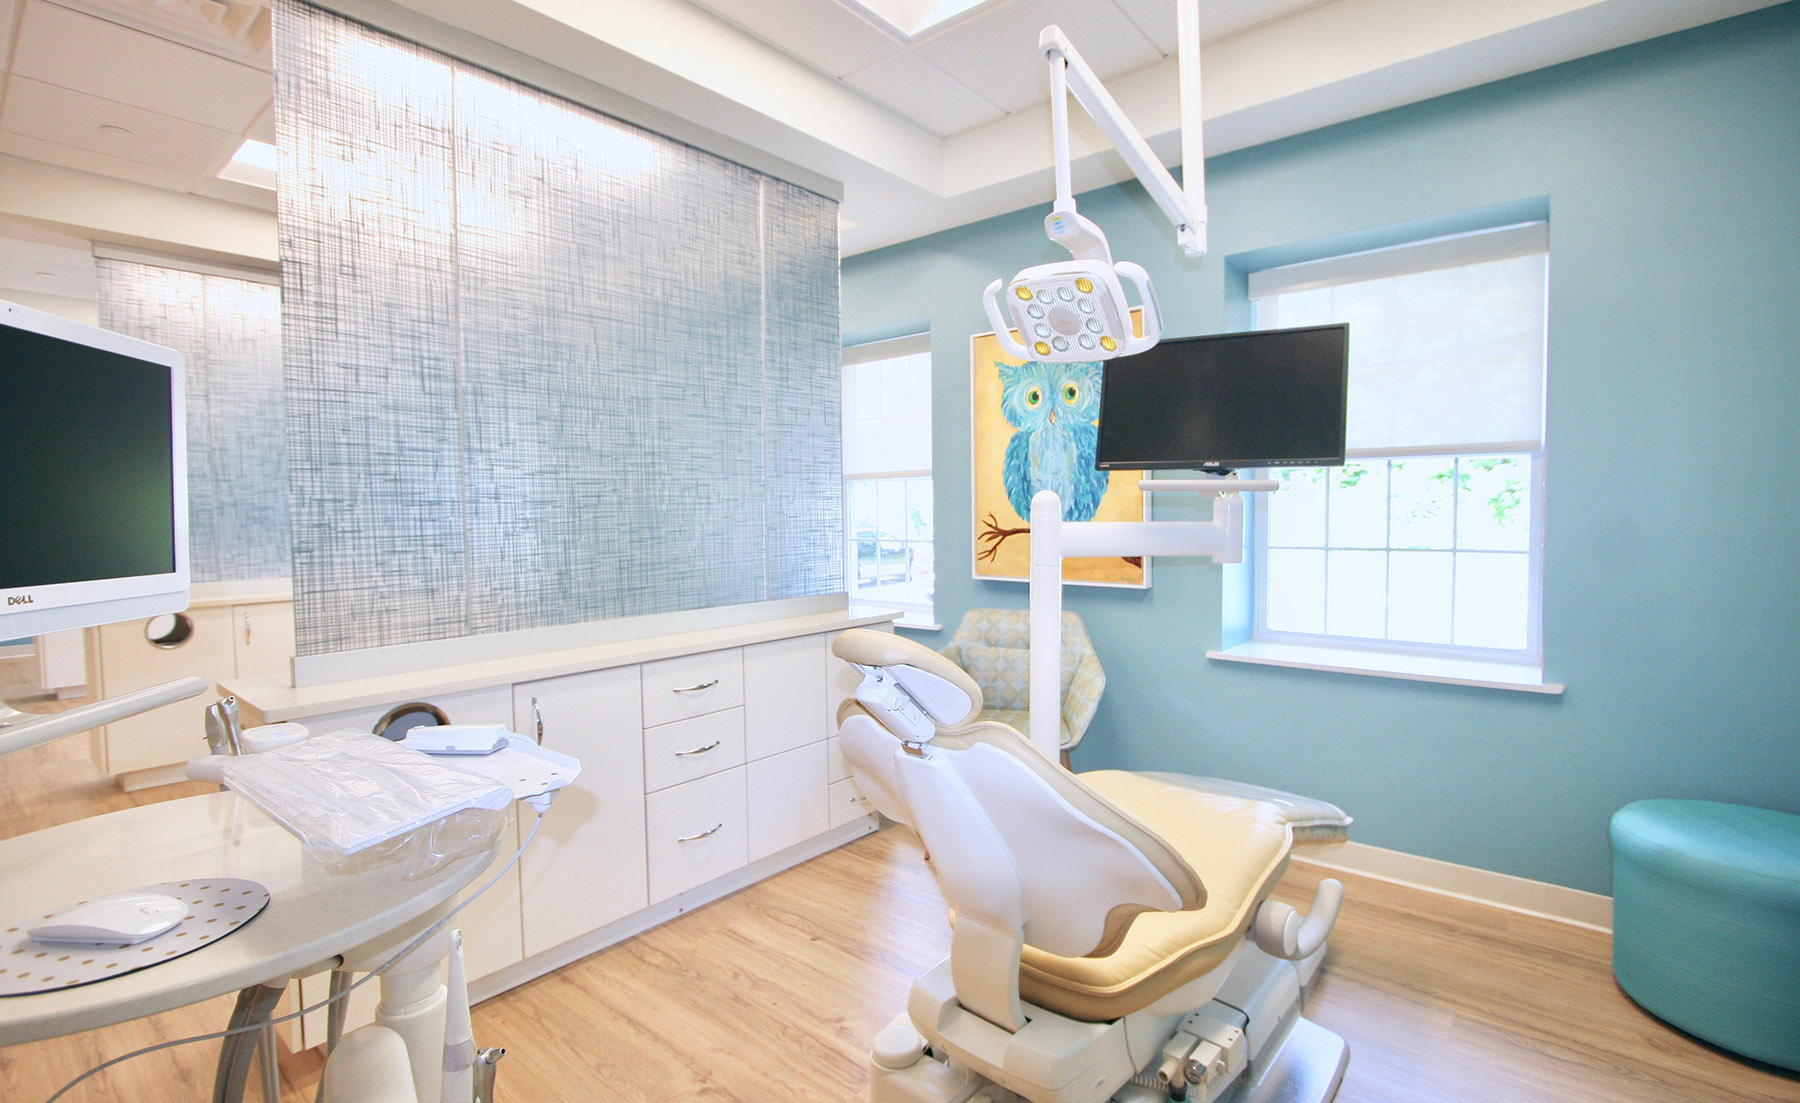 Village Pediatric Dental – Dr. Linda Morgan - Doyle and Mattheson